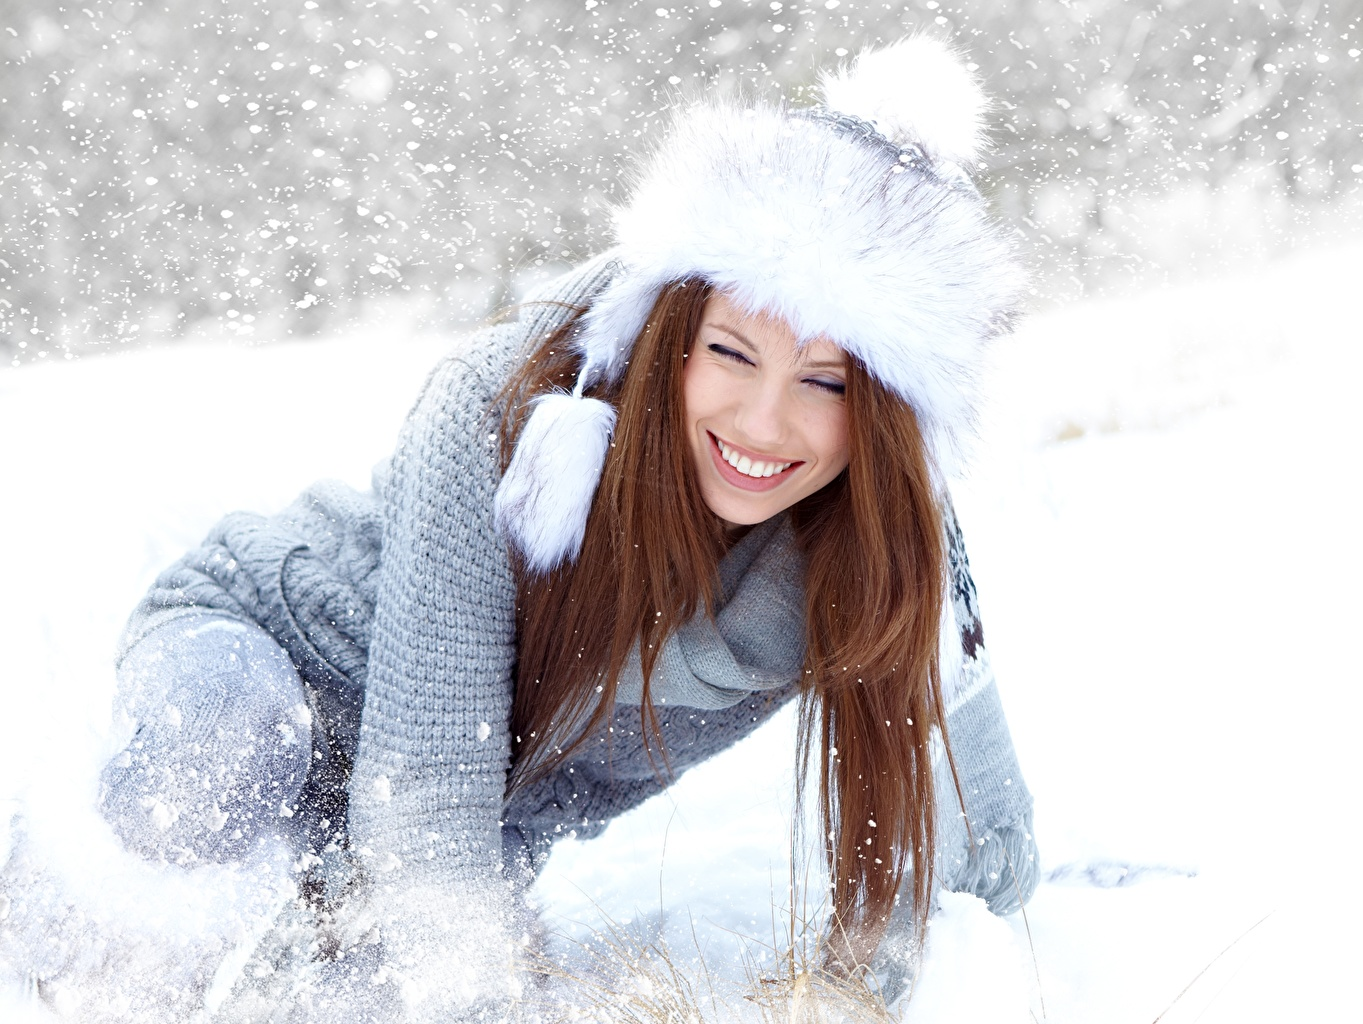 Desktop Wallpapers Izabela Magier Brown haired Smile Girls Winter Winter hat Snow Sweater female young woman